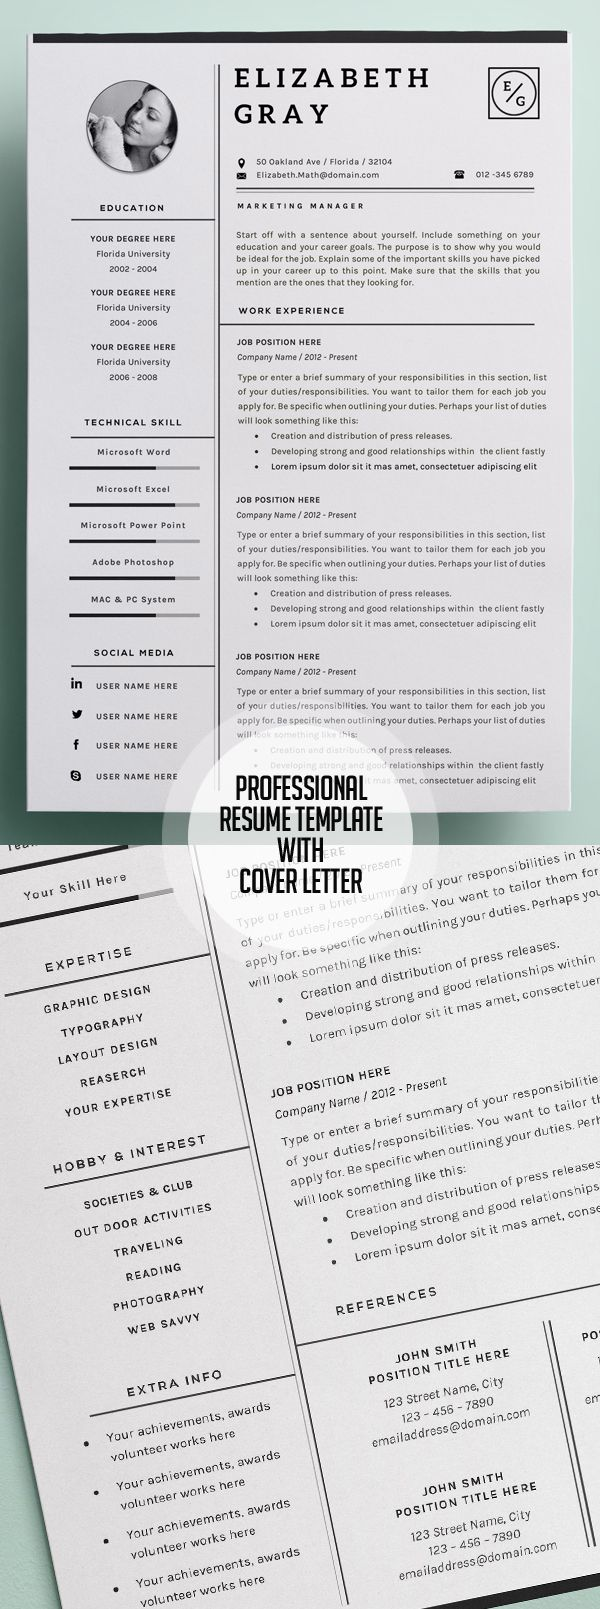 Opposenewapstandardsus  Pleasing  Resume Ideas On Pinterest  Resume Resume Templates And  With Extraordinary Professional And Modern Resume Template With Page Cover Cvtemplate With Endearing Recent Grad Resume Also Paralegal Resume Objective In Addition Barney Stinson Resume And Whats A Cover Letter For A Resume As Well As Apartment Manager Resume Additionally How To Include References In Resume From Pinterestcom With Opposenewapstandardsus  Extraordinary  Resume Ideas On Pinterest  Resume Resume Templates And  With Endearing Professional And Modern Resume Template With Page Cover Cvtemplate And Pleasing Recent Grad Resume Also Paralegal Resume Objective In Addition Barney Stinson Resume From Pinterestcom